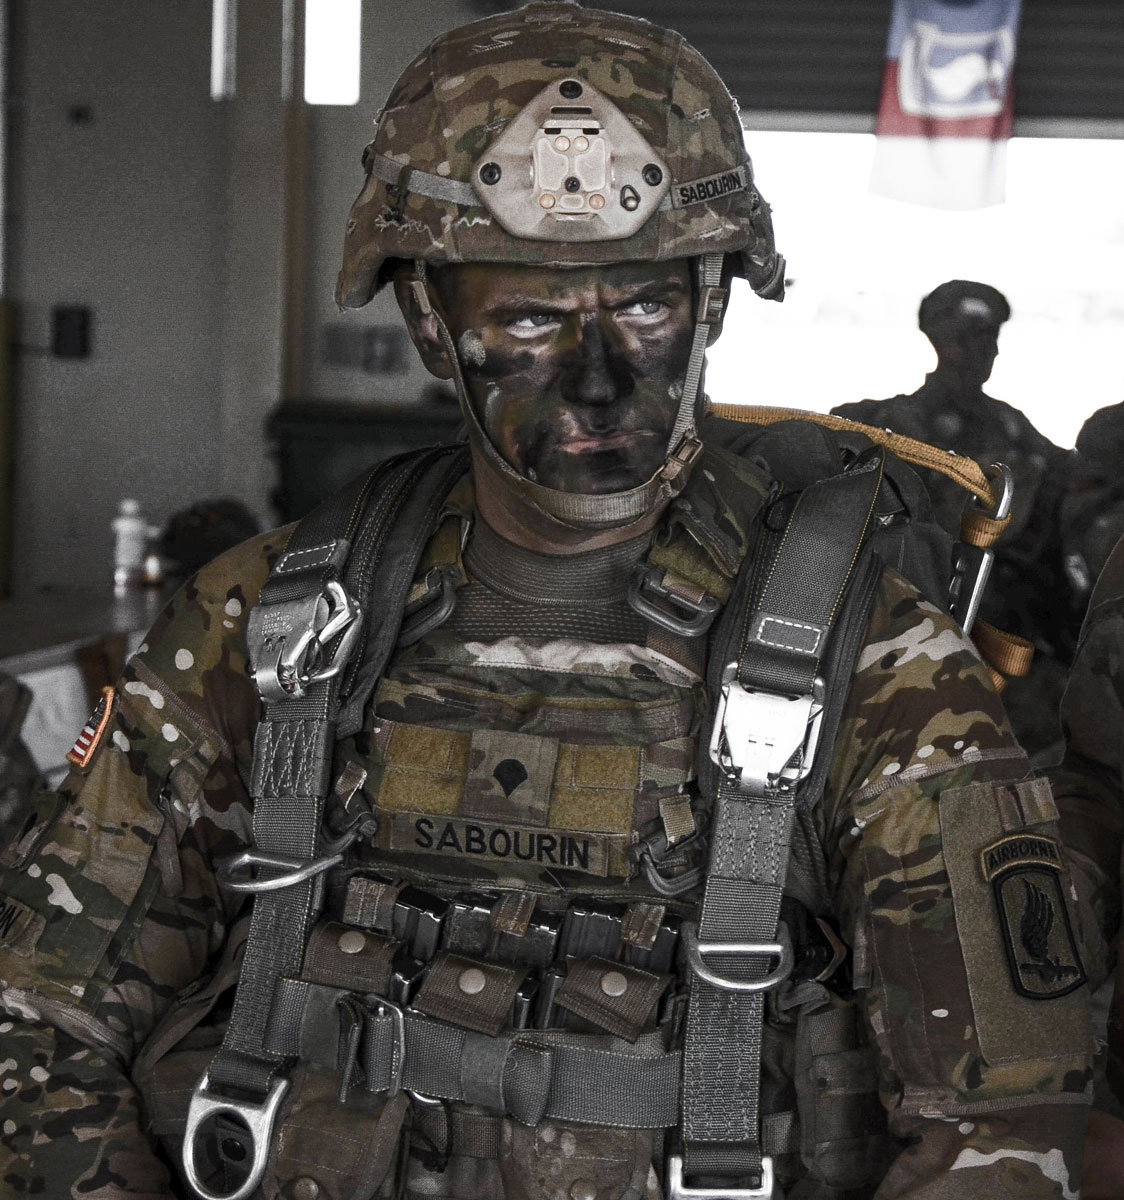 A First Rock Paratrooper of the 173rd Airborne Brigade United States Army is rigged and ready to air insert into a hostile environment.